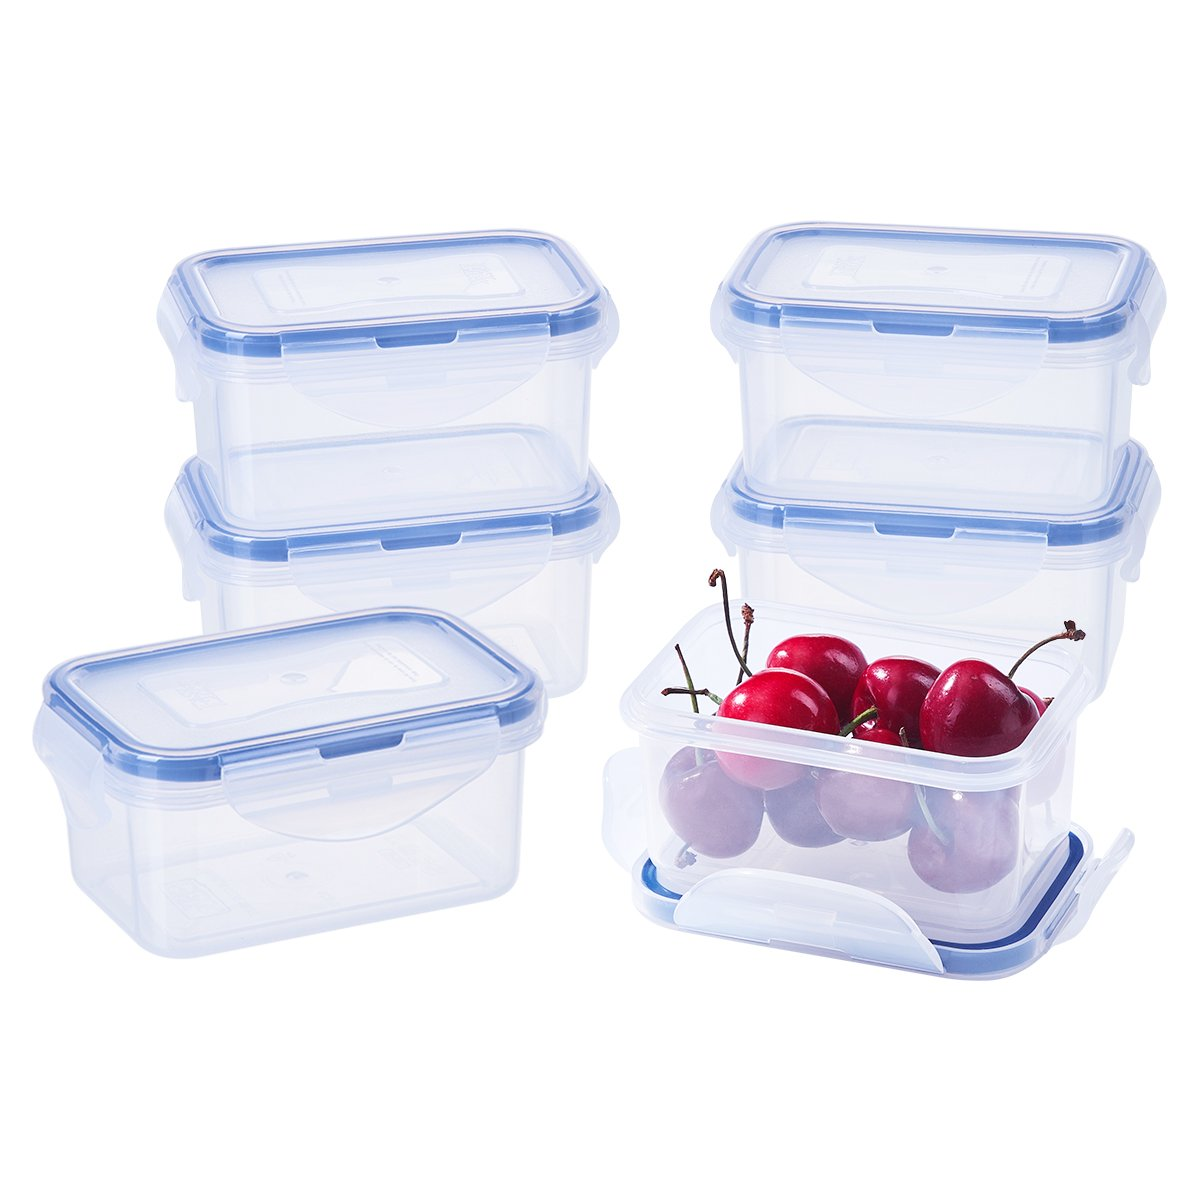 [6Pack] 6.1oz Baby Food Storage BPA-Free Airtight Plastic Containers Set, Rectangular Small Bento Lunch Boxes, Microwave, Freezer and Dishwasher Safe